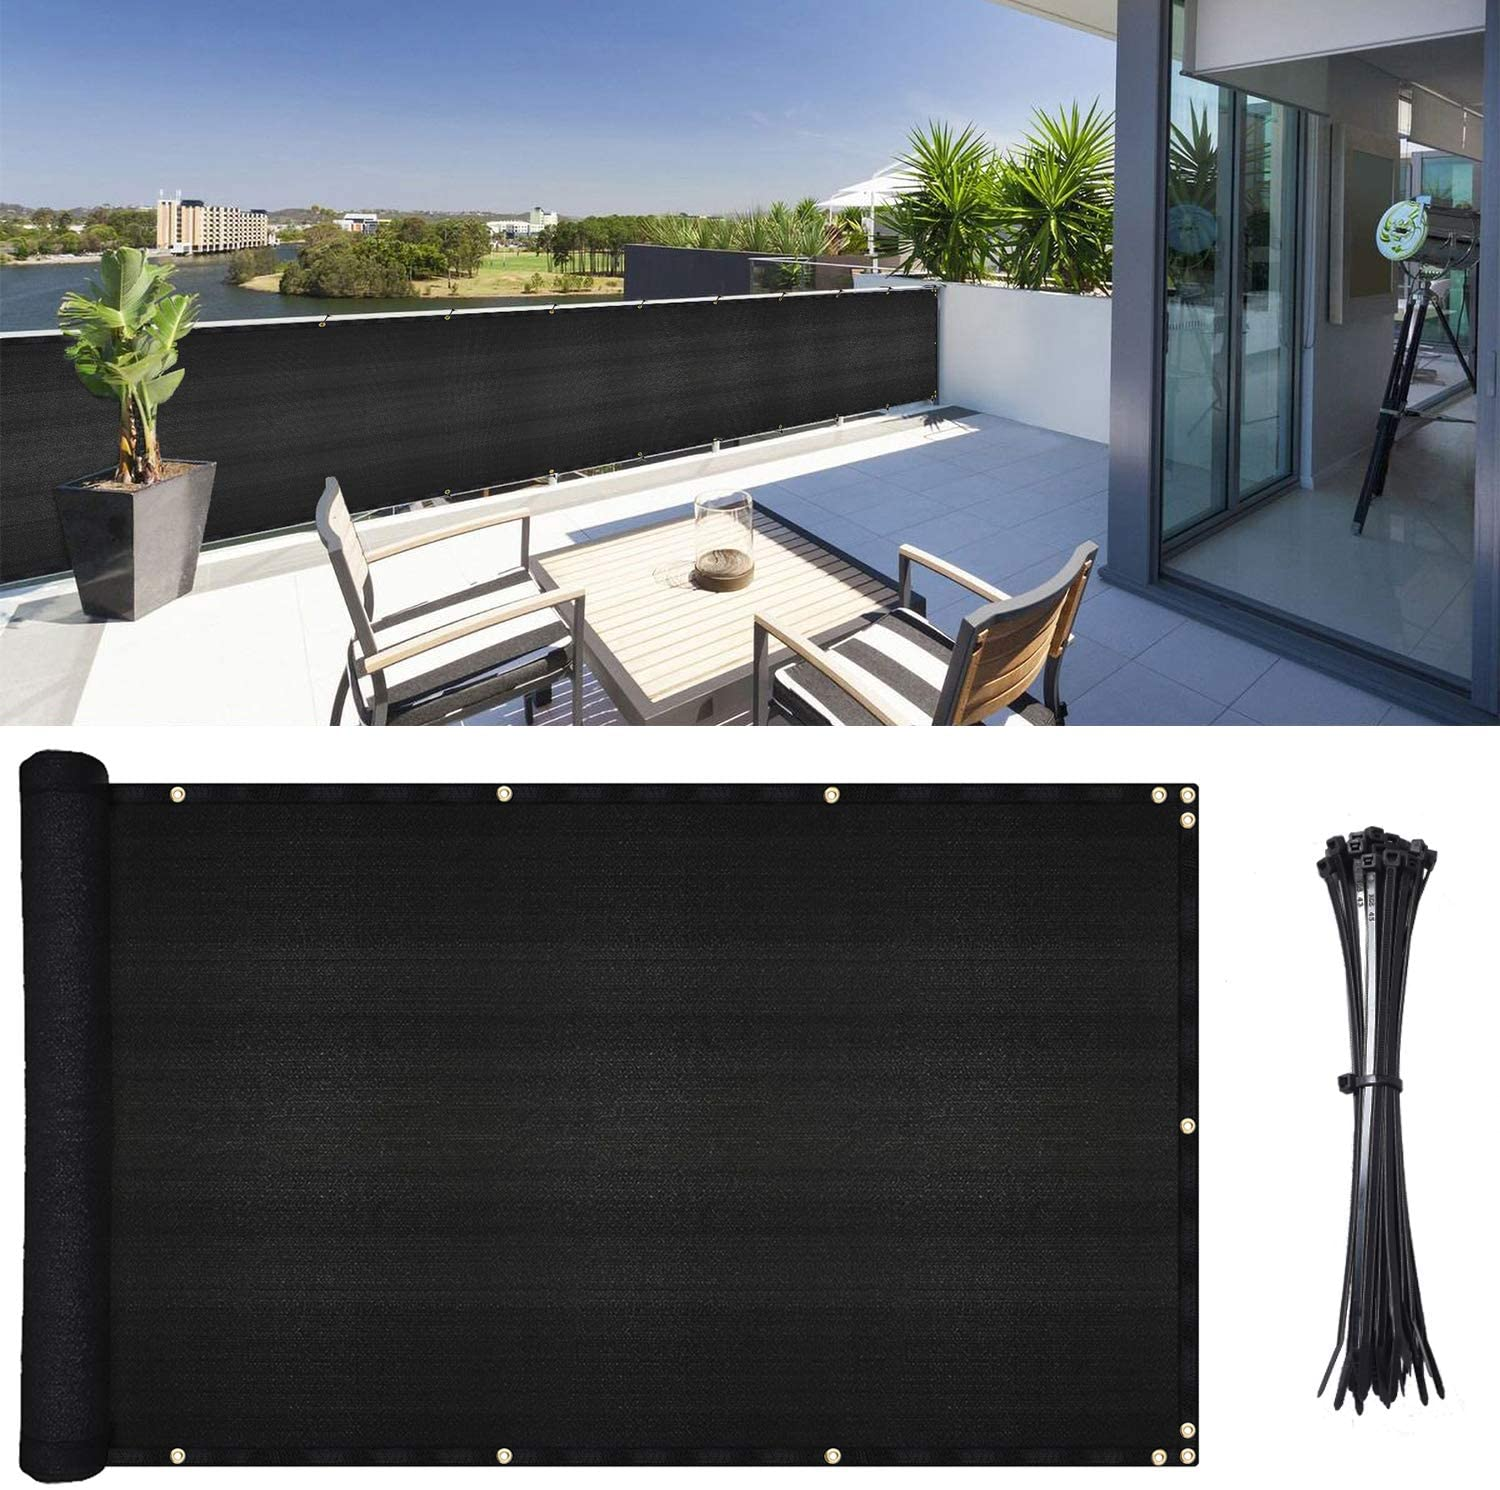 DearHouse Balcony Privacy Screen Cover, 3.5ft x16.5ft Fence Windscreen for Porch Deck, Outdoor, Backyard, Patio, Balcony to Cover Sun Shade, UV-Proof, Weather-Resistant, Includes 35 pc Cable Ties